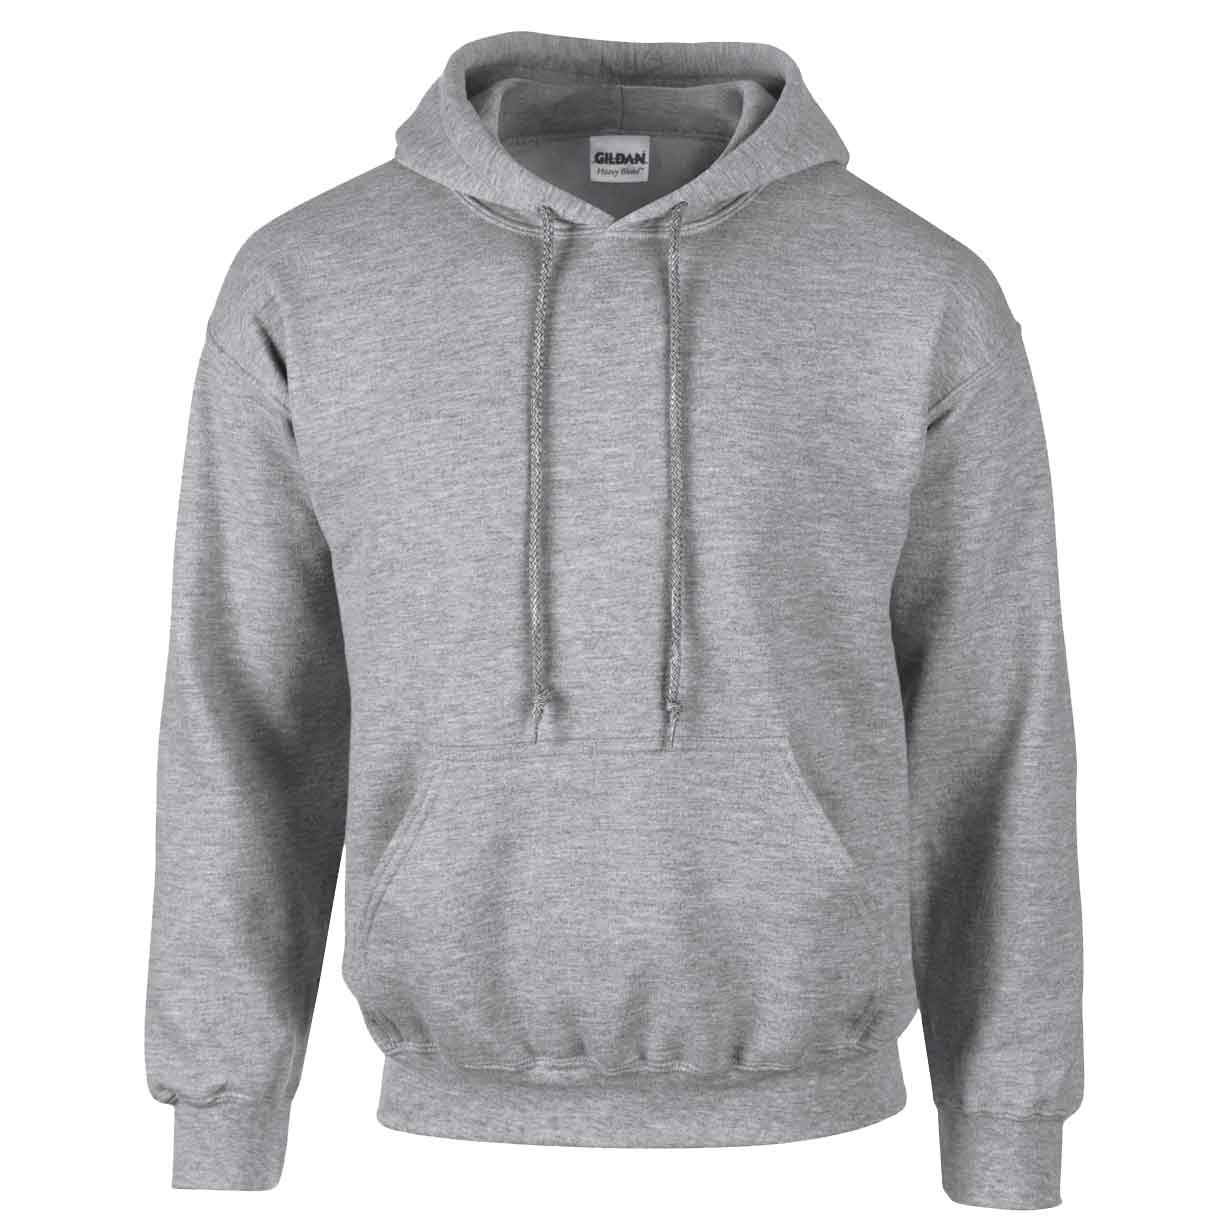 4fbae48c7 Our best selling sweatshirt is the Gildan 1850 Heavy Blend Hoodie. It is  pre-shrunk and a 50 50 cotton polyester blend with 33 different colours.  Customize